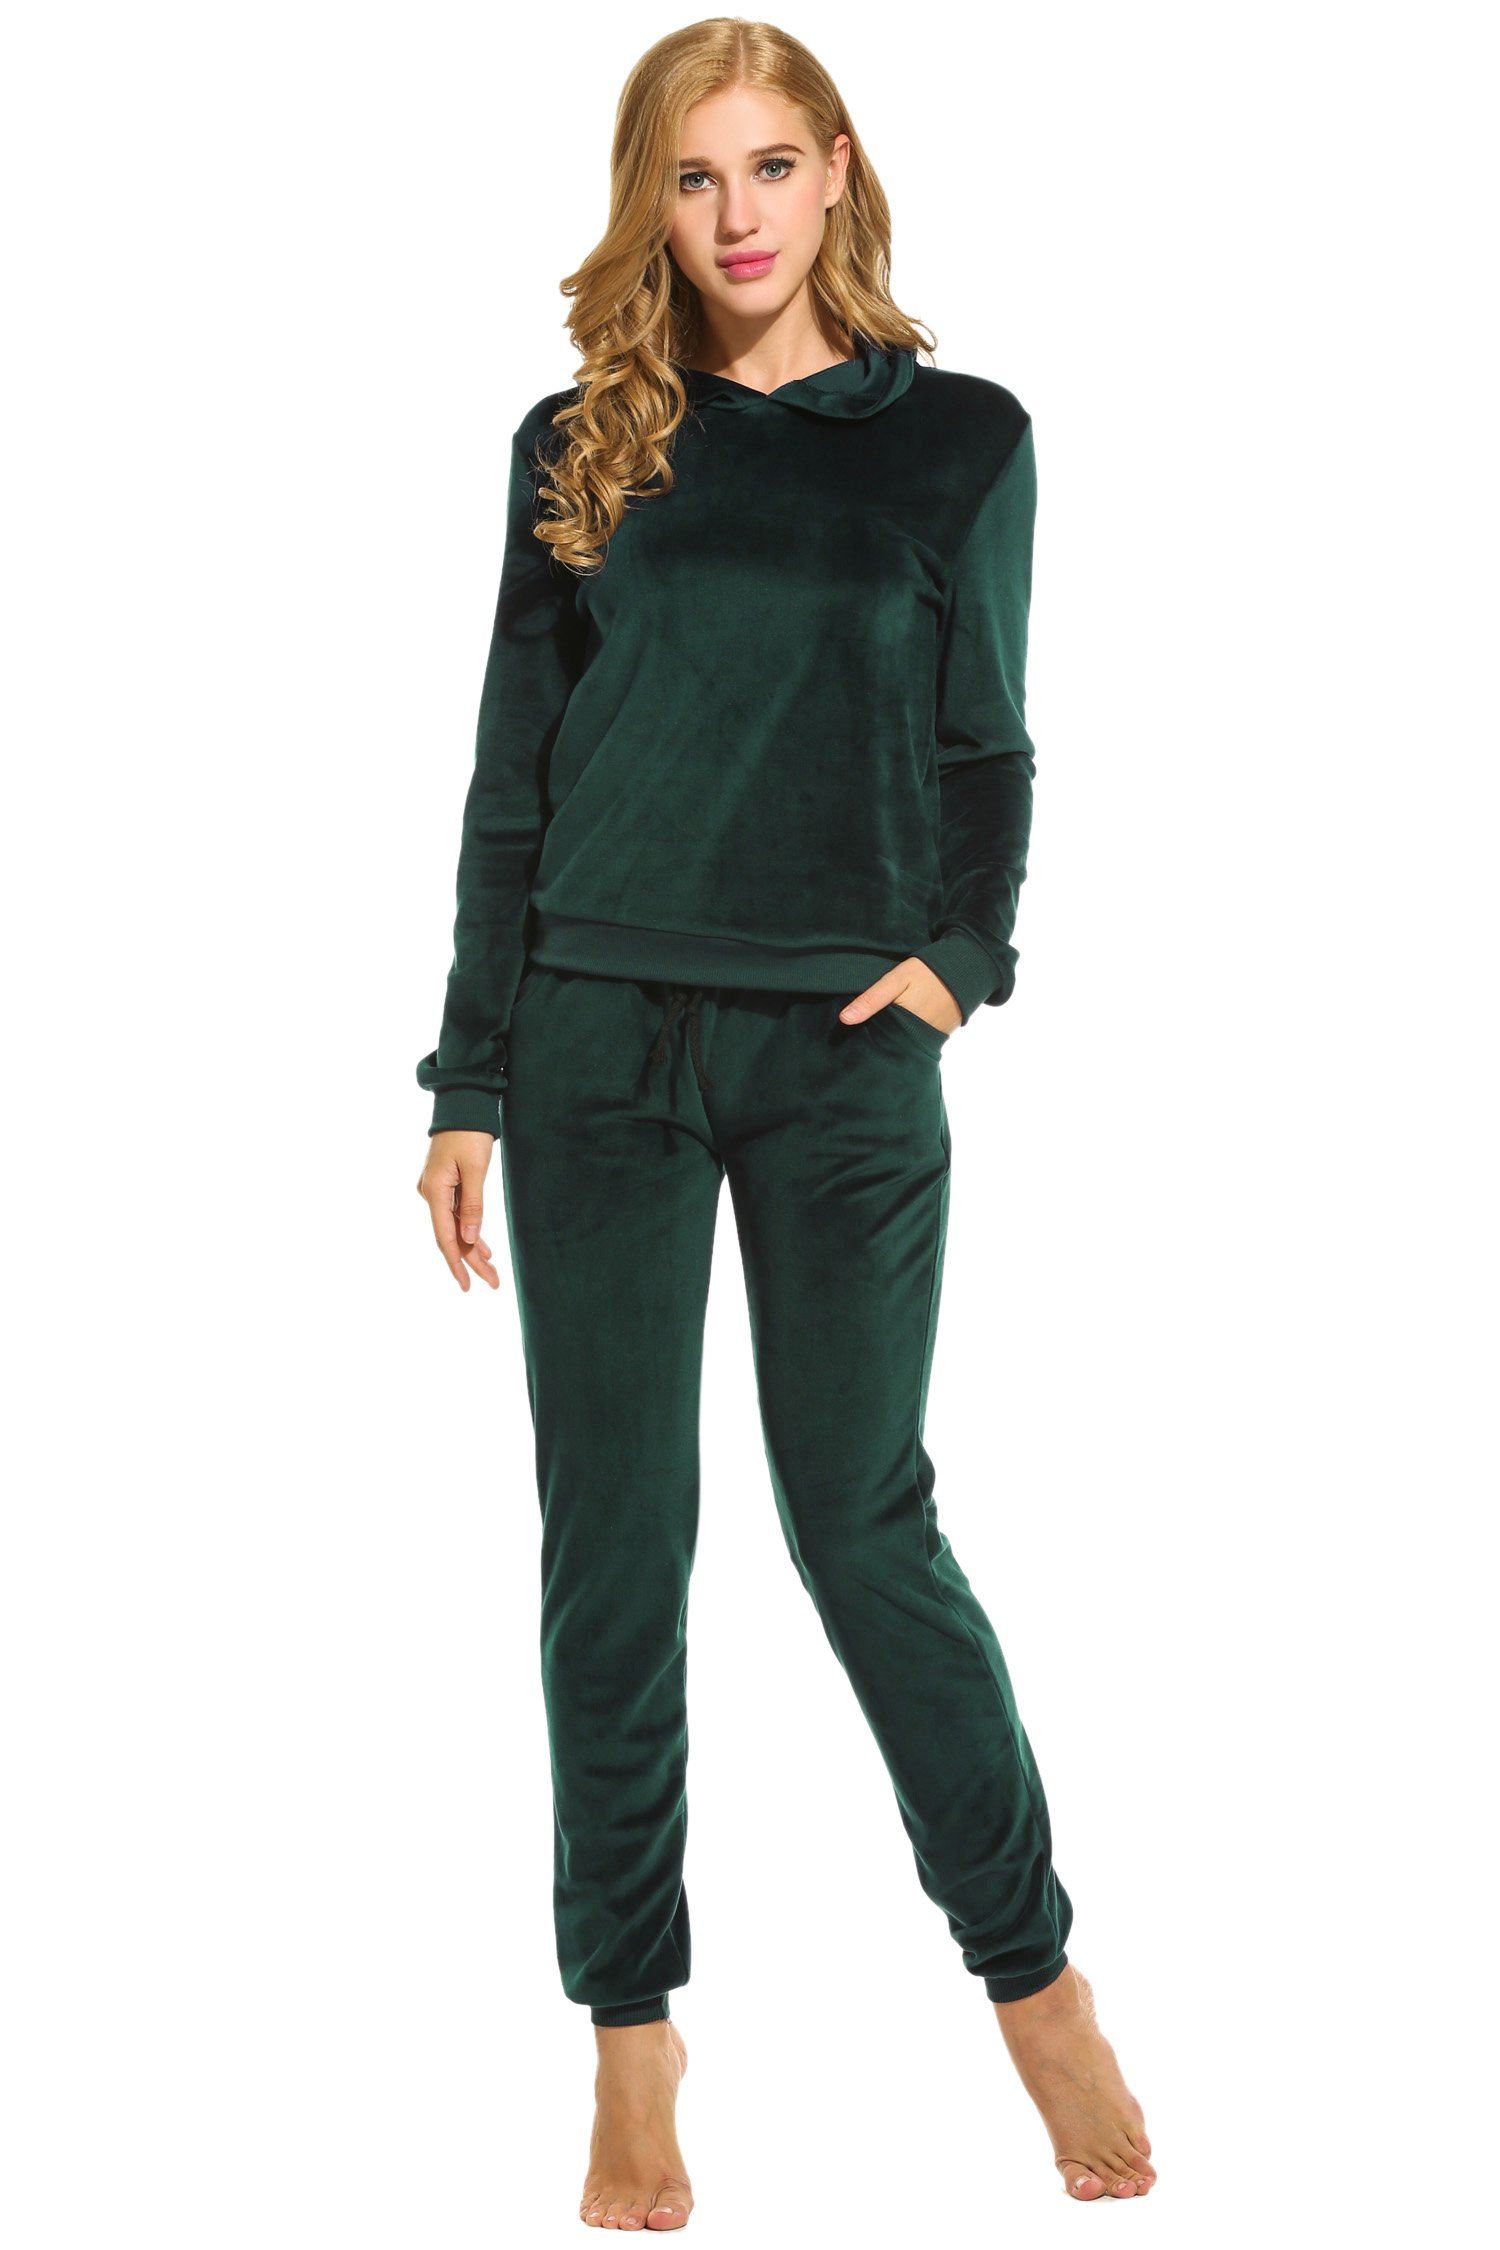 Hotouch Women's Hoodie and Sweatpants Velour Suits Tracksuits Green M